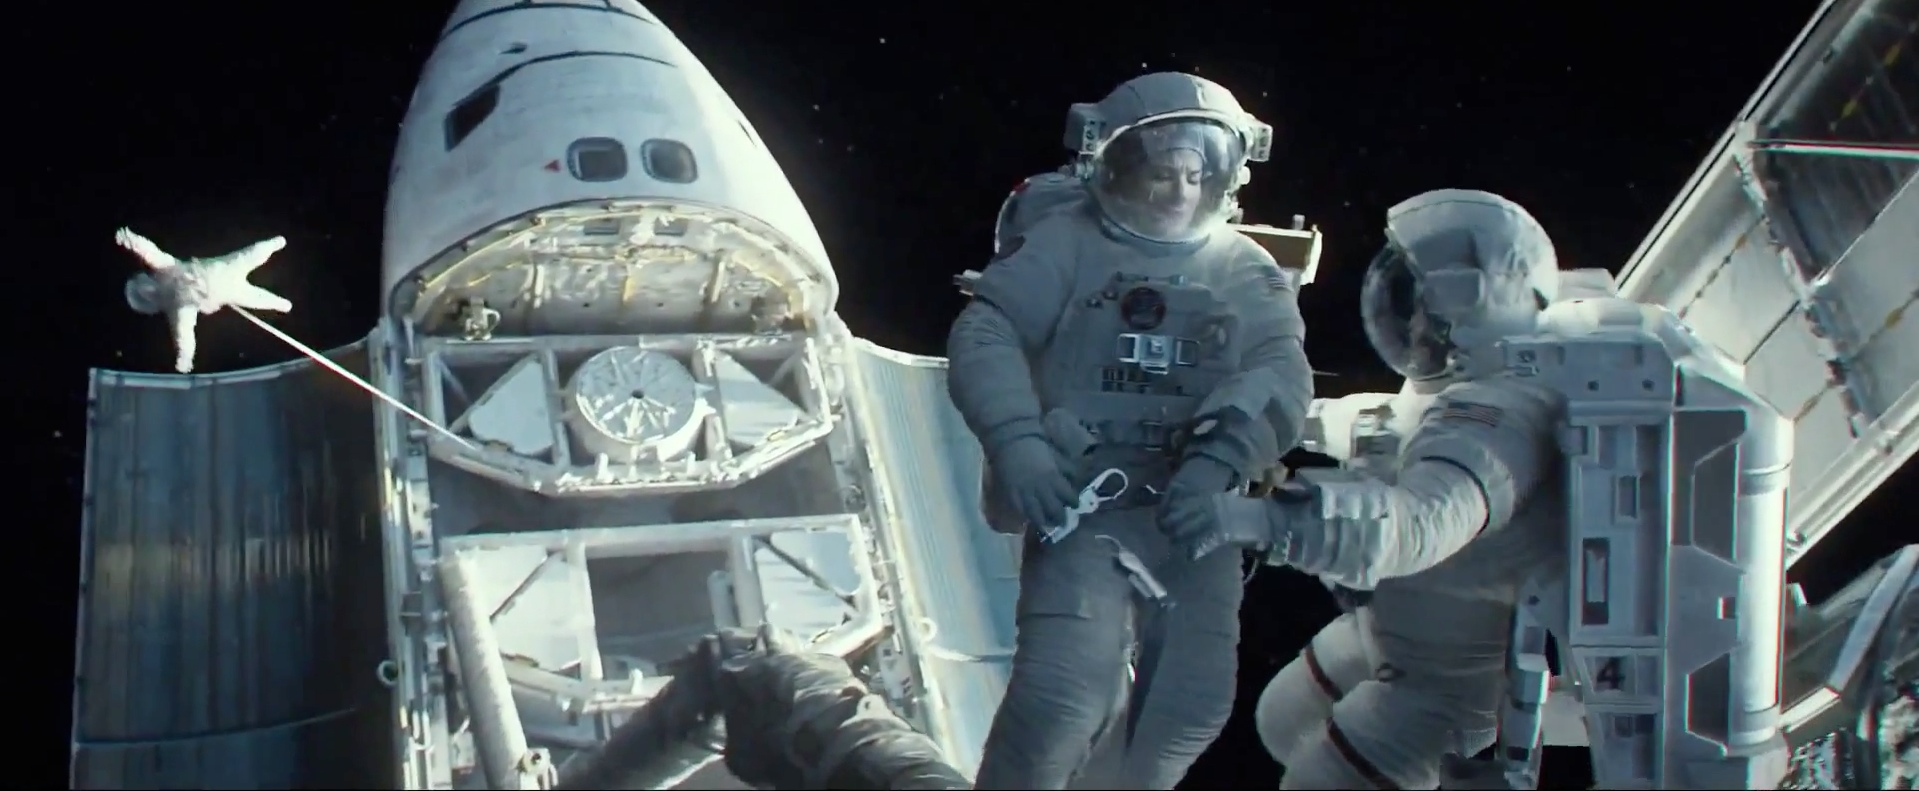 Clooney assists Bullock, while in the background another hapless astronaut is hit by debris.